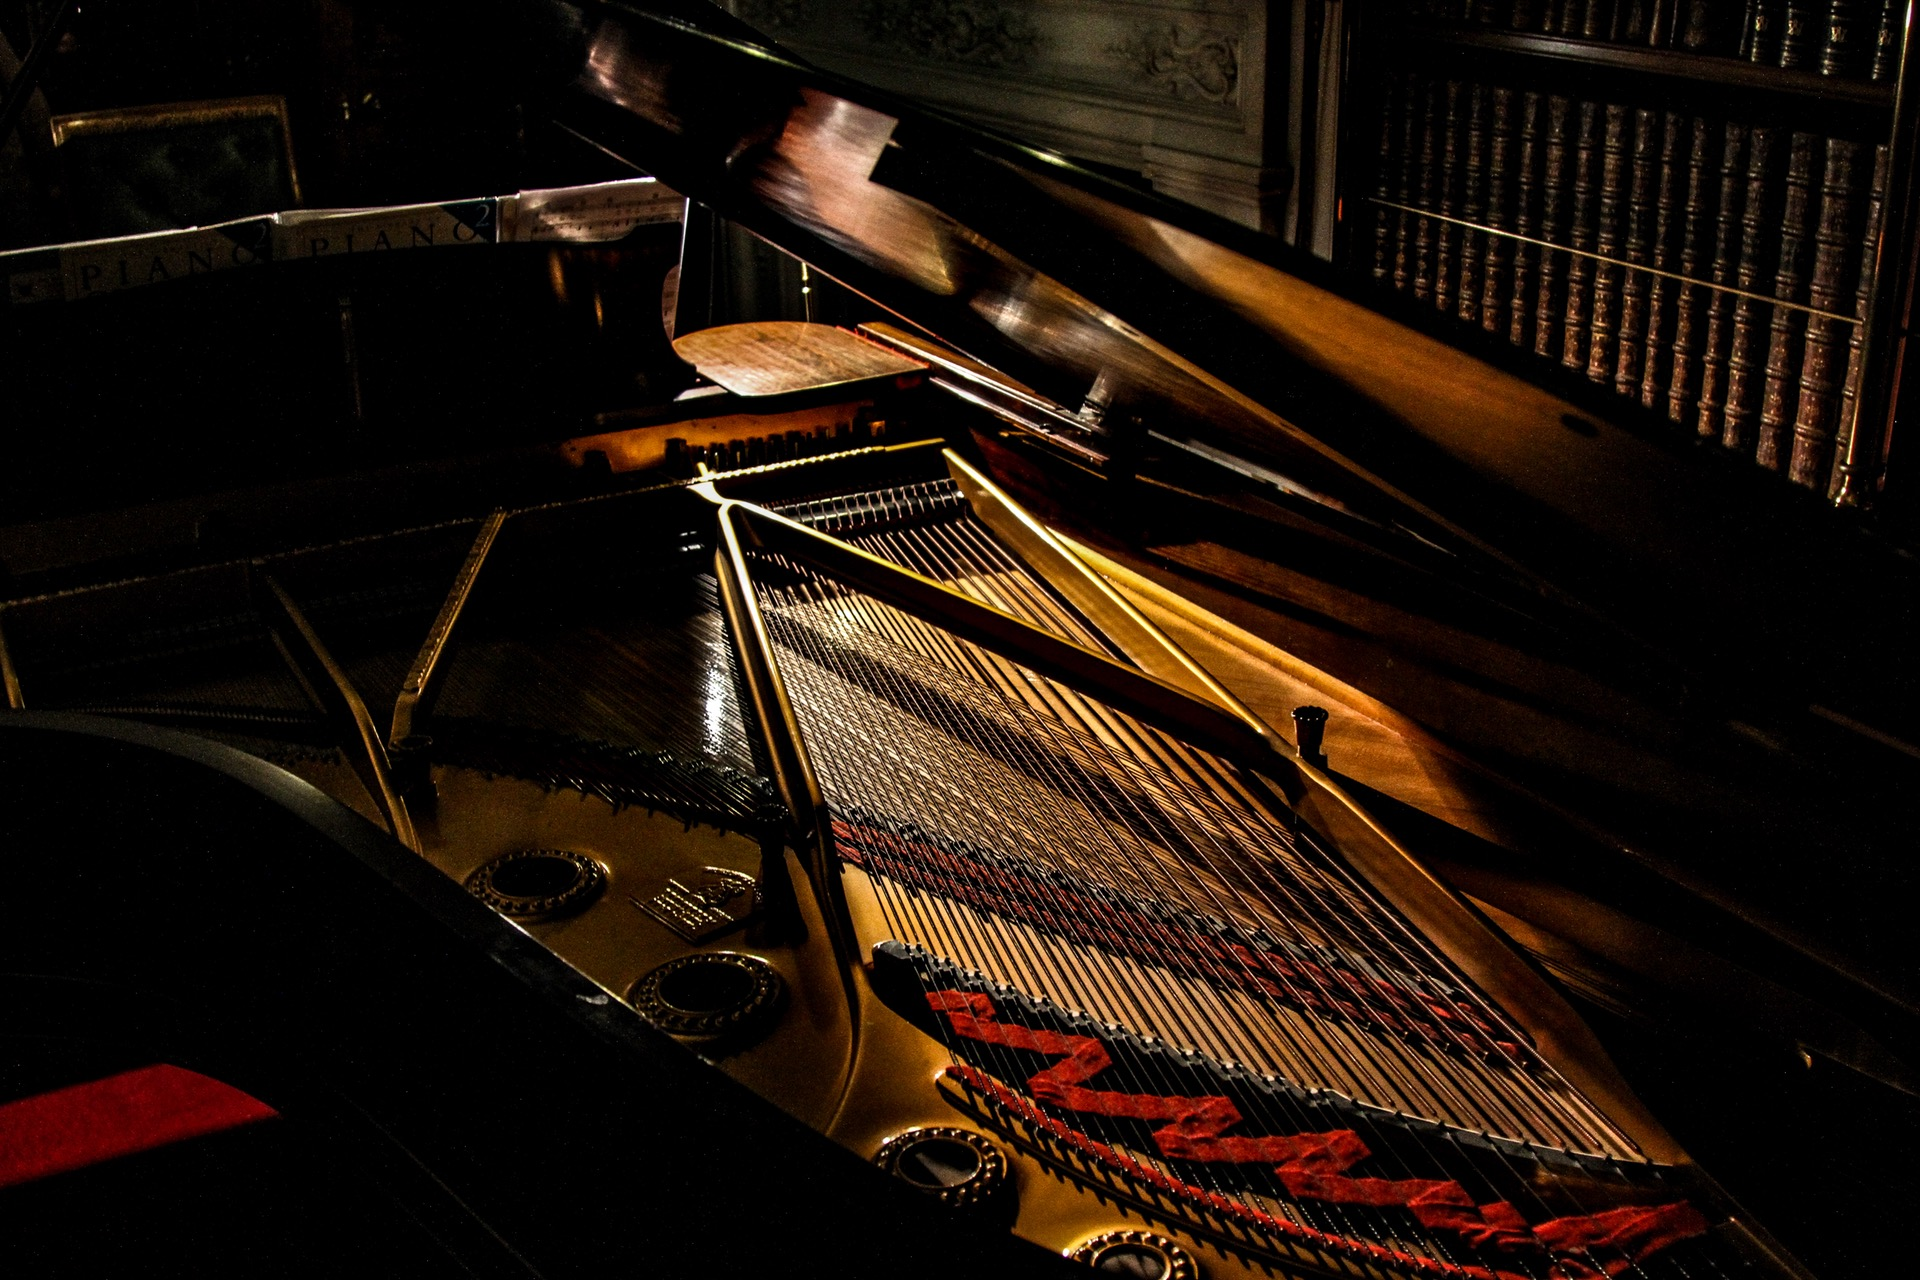 theme-calm-reflection-classical-shadow-strings-71690